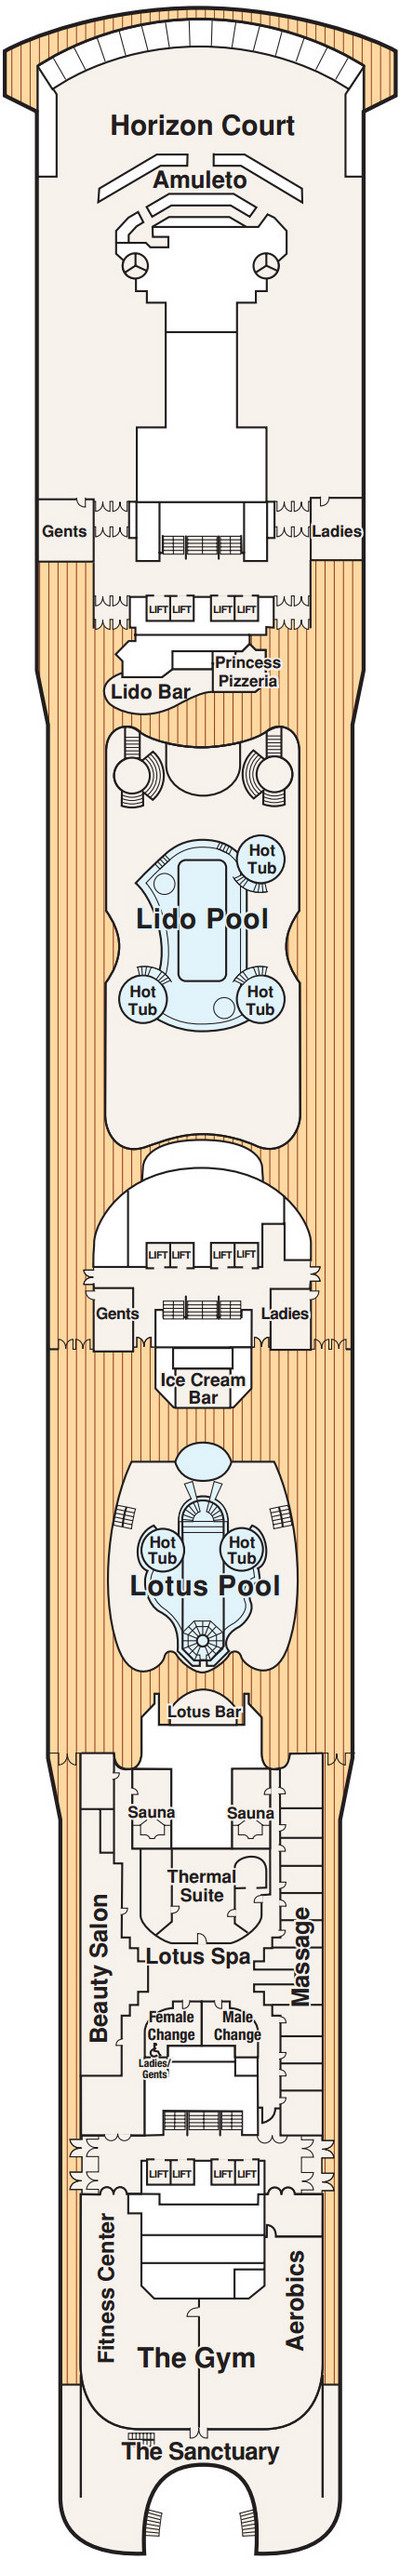 Coral Princess Lido Deck 14 layout